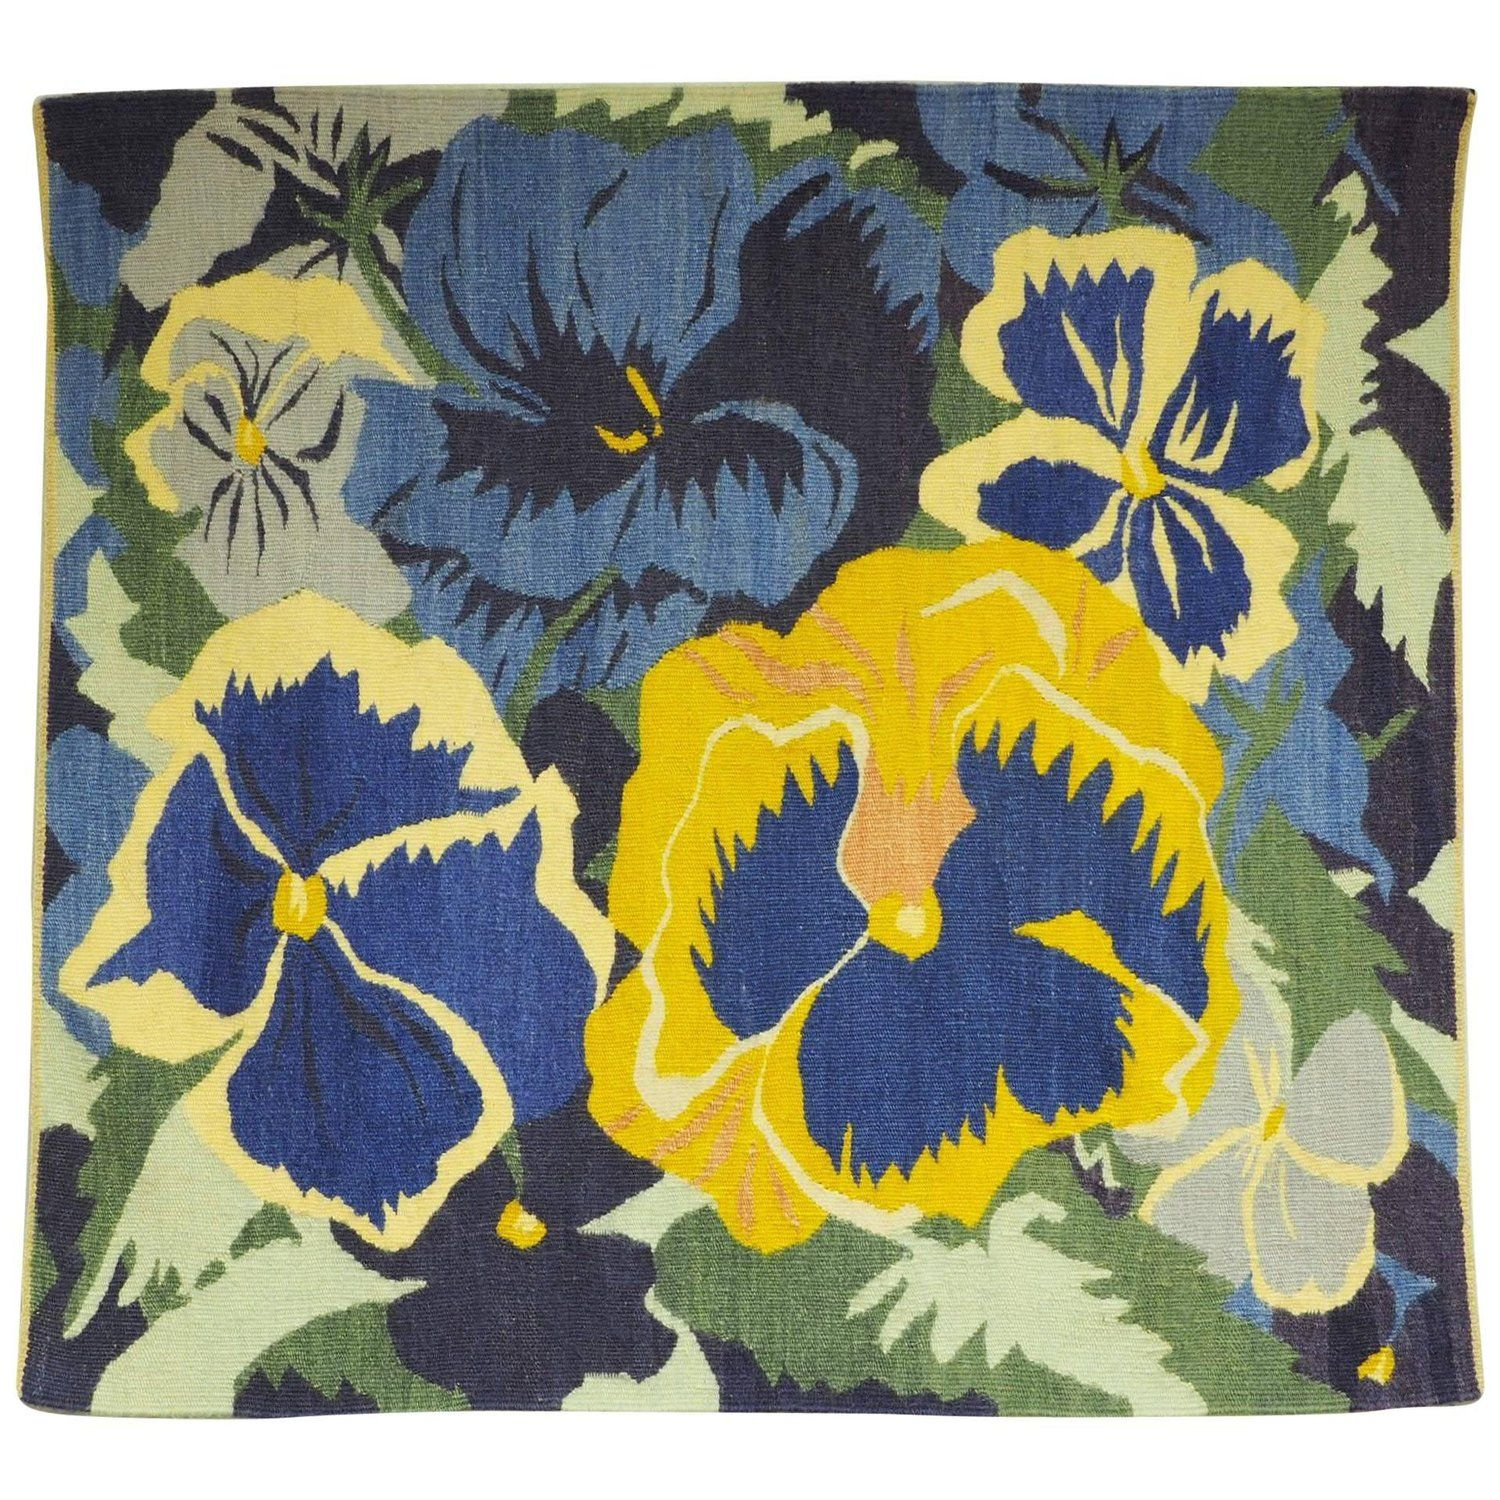 Large Floral Woven Wool Tapestry Wall Hanging | Tapestry wall ...